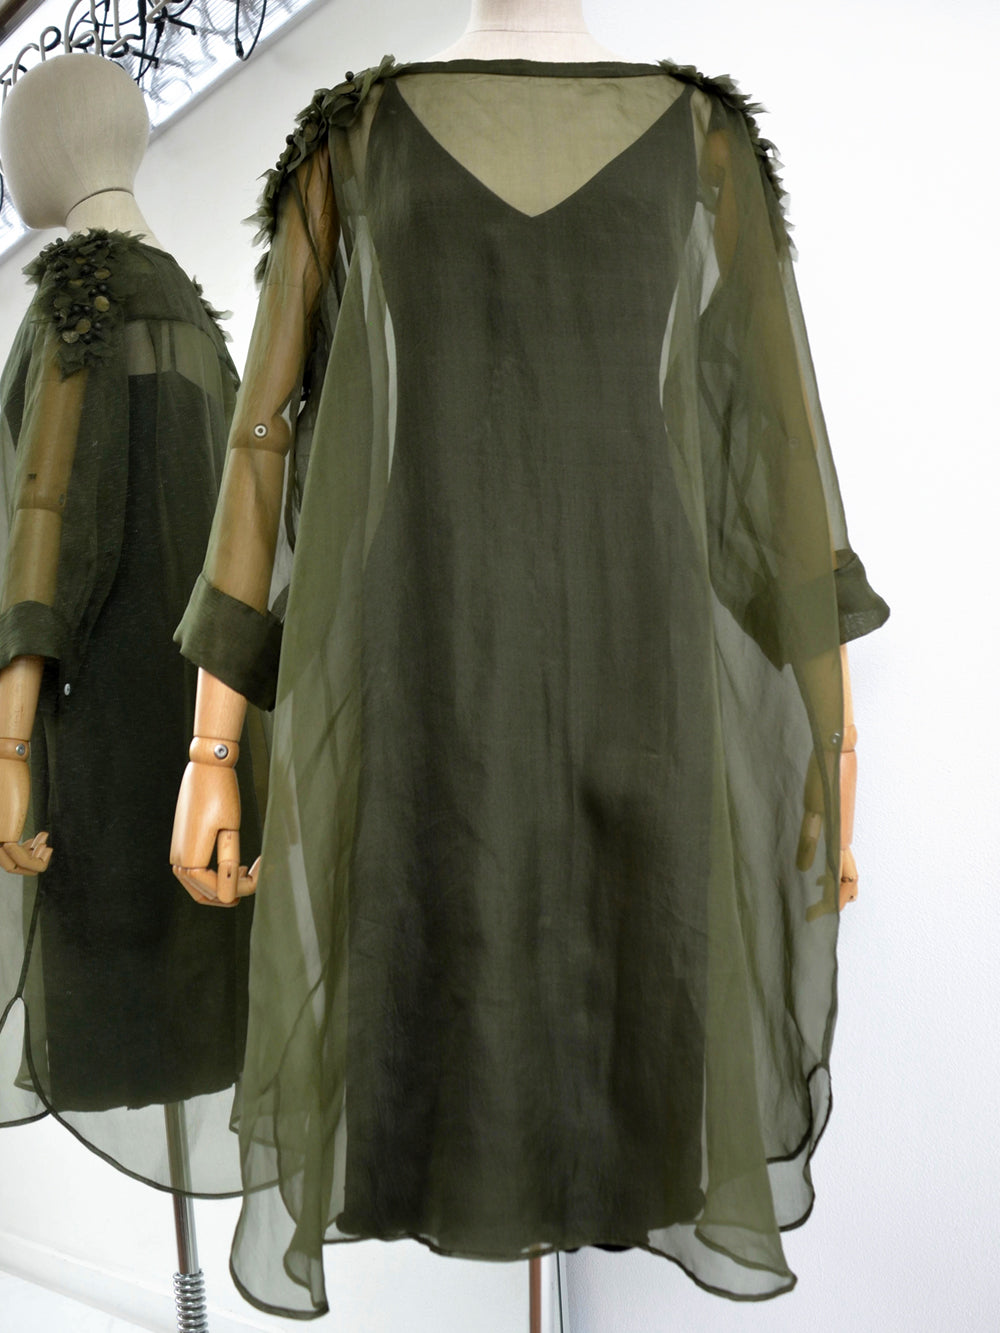 Akira Draped Embellished Silk Dress Dark Olive